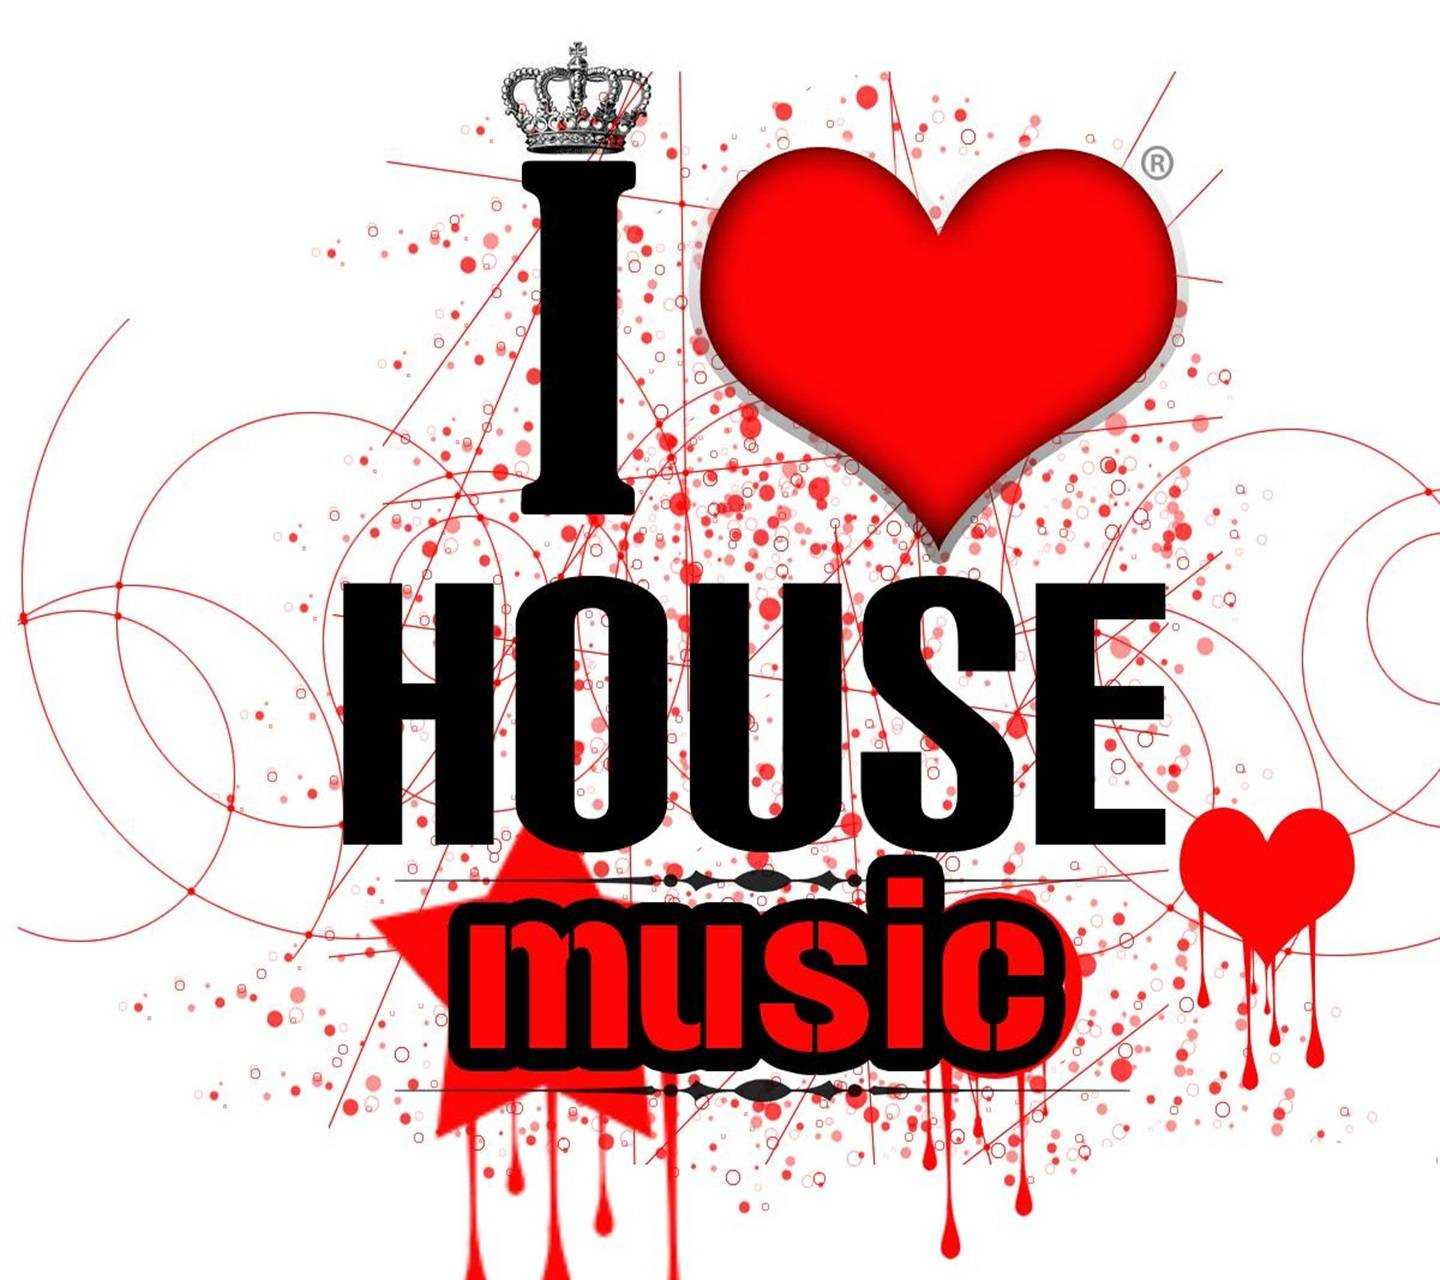 I Love House Music Wallpaper By Psj10 62 Free On Zedge